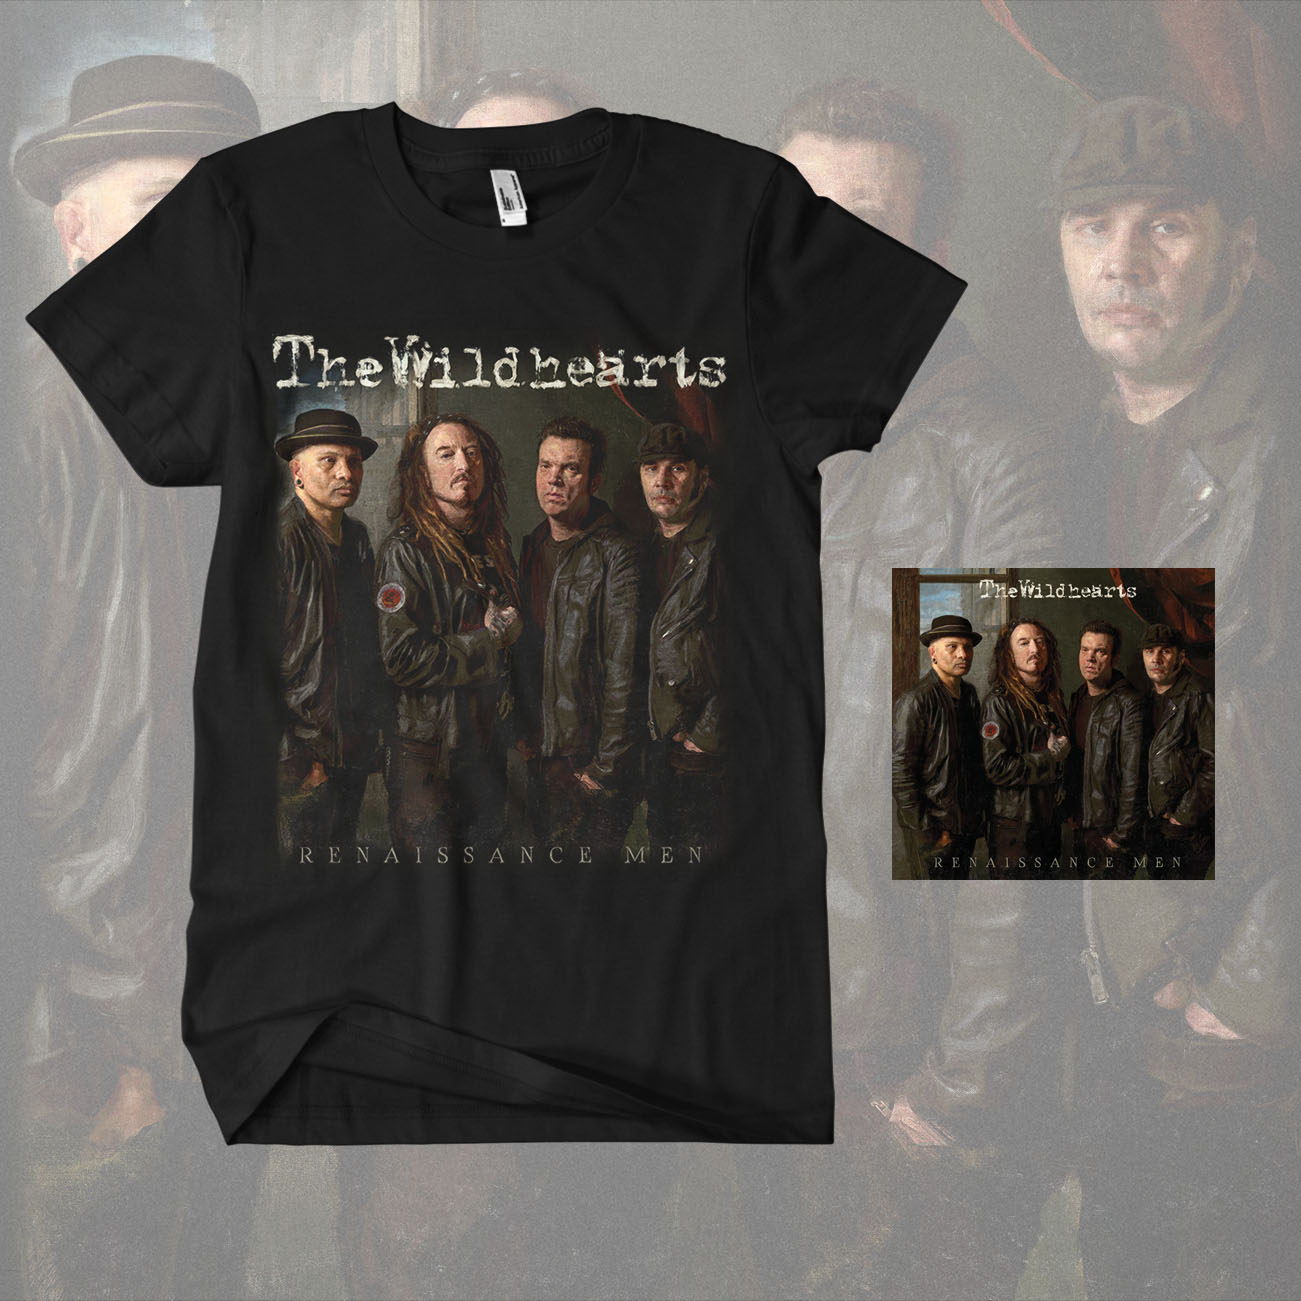 The Wildhearts - 'Renaissance Men' Jewelcase CD & T-Shirt Bundle - The Wildhearts